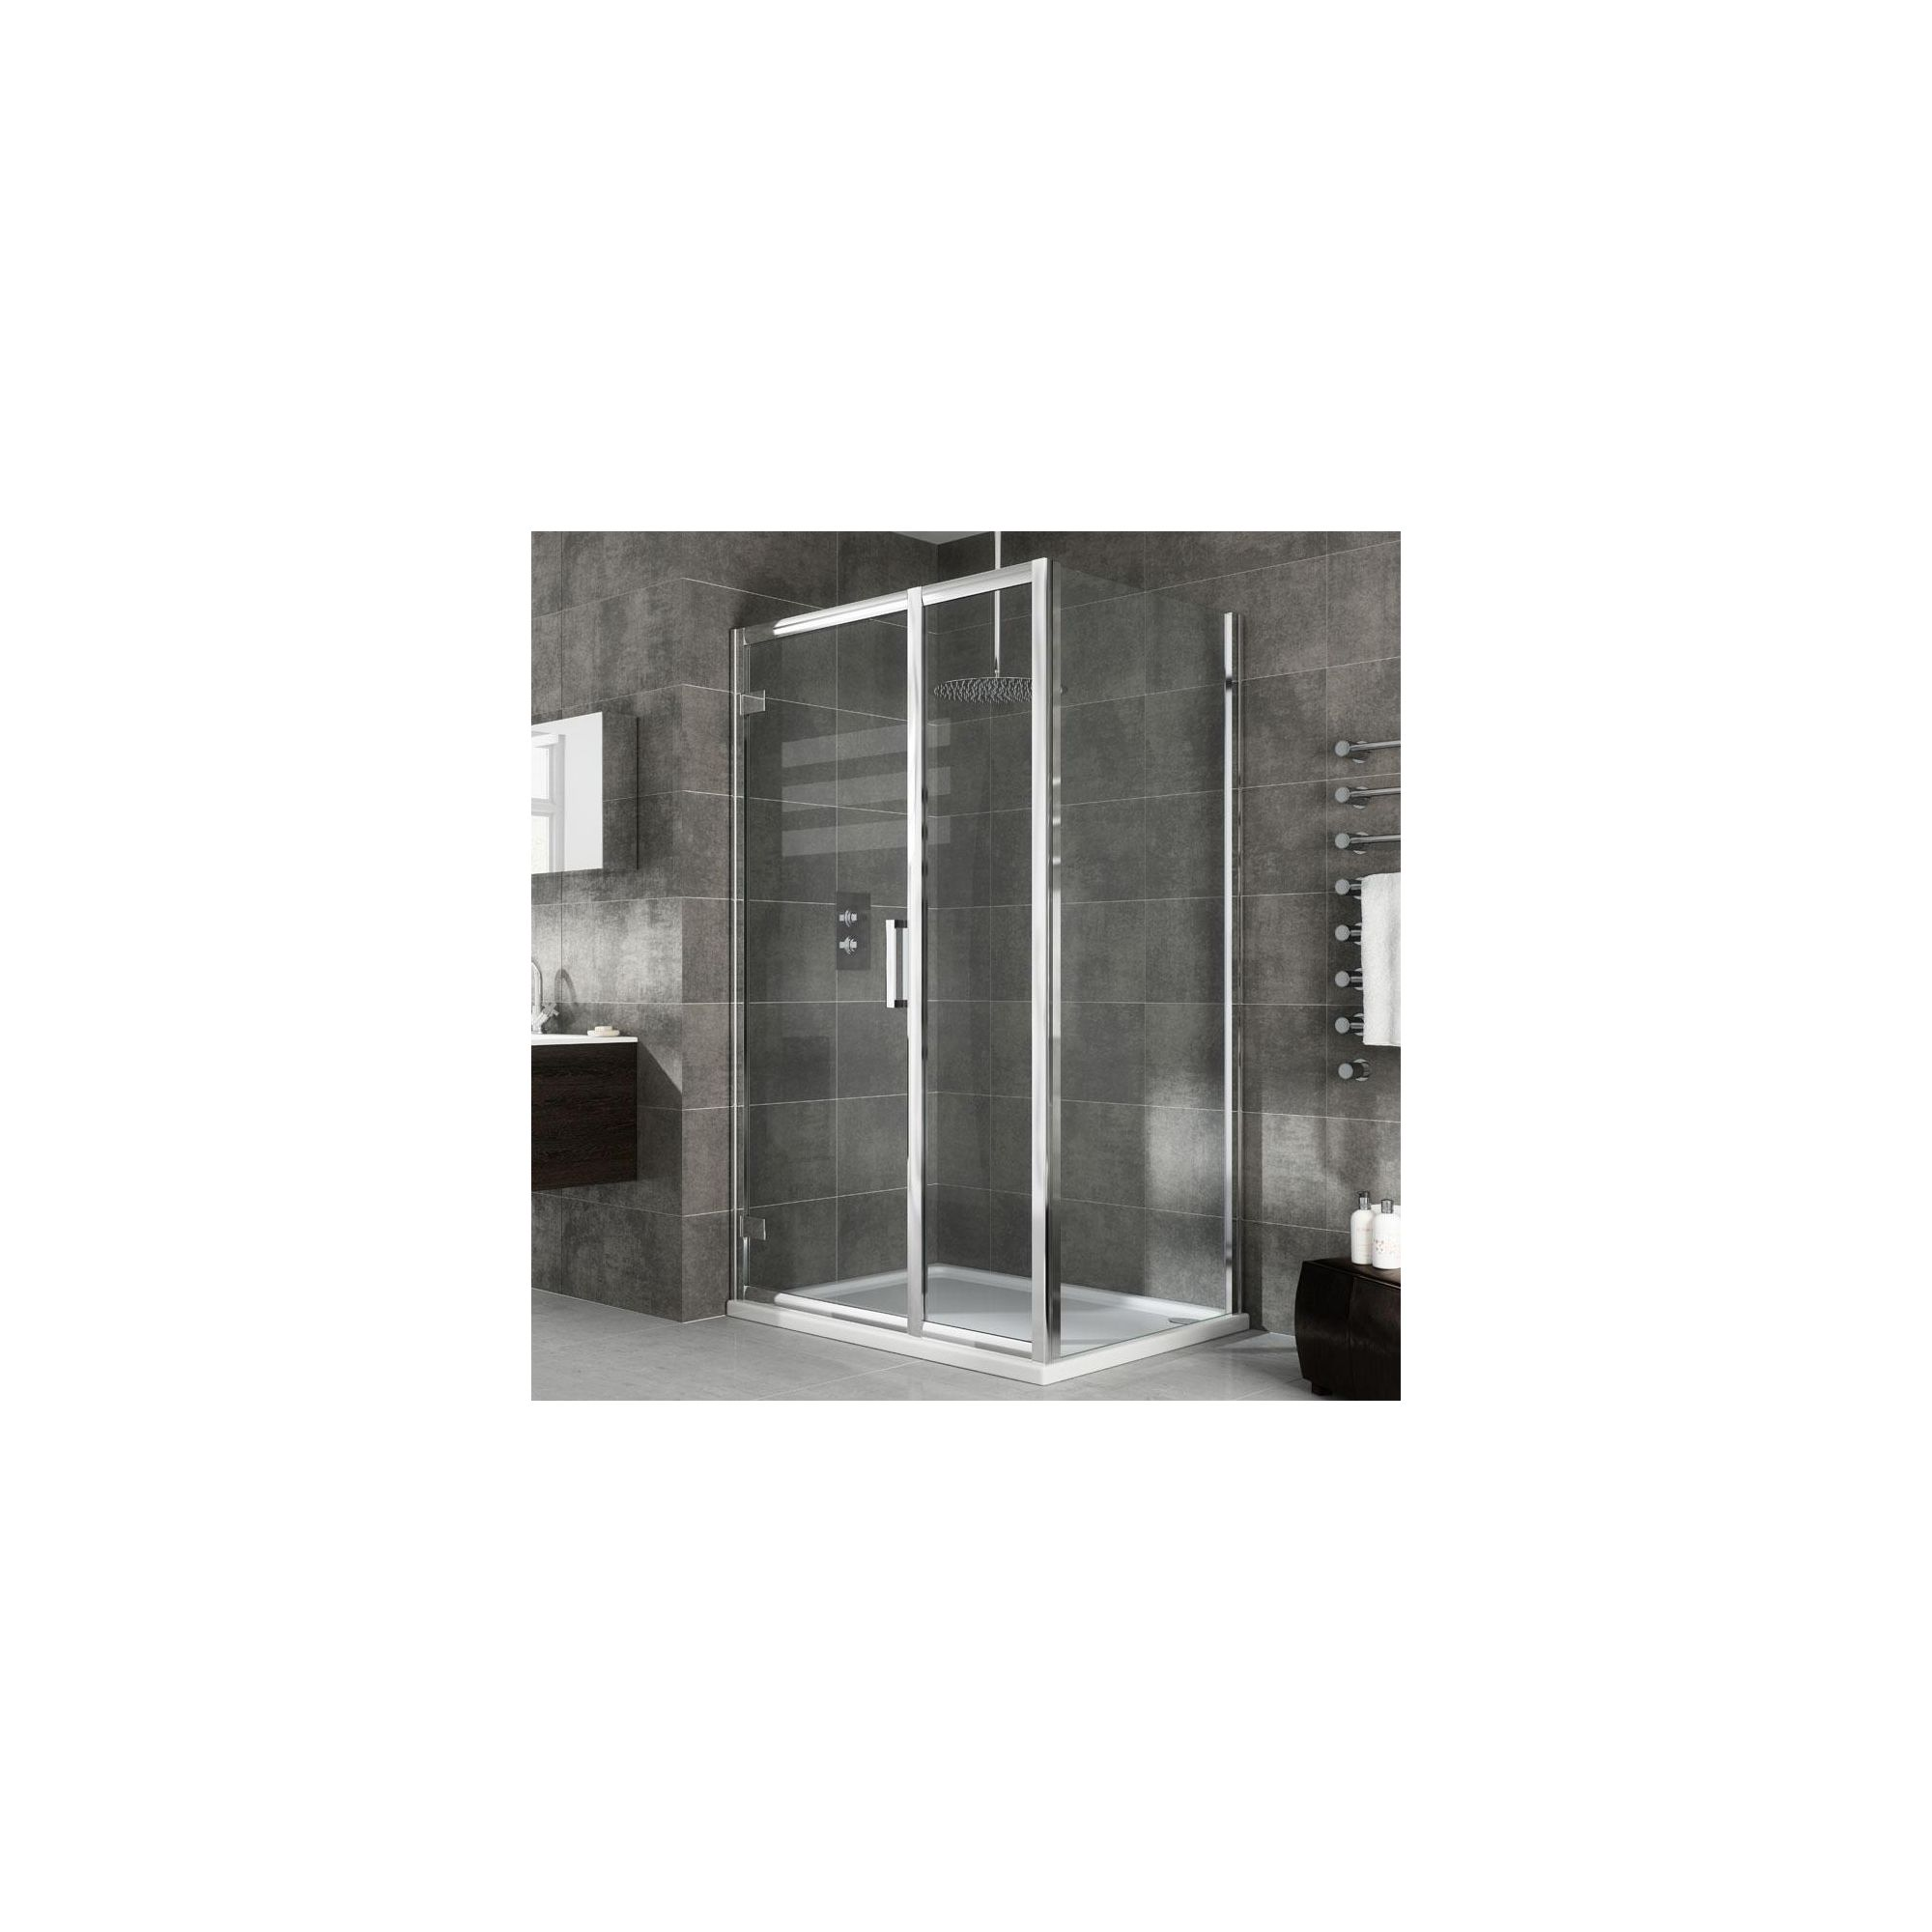 Elemis Eternity Inline Hinged Door Shower Enclosure, 1000mm x 900mm, 8mm Glass, Low Profile Tray at Tesco Direct